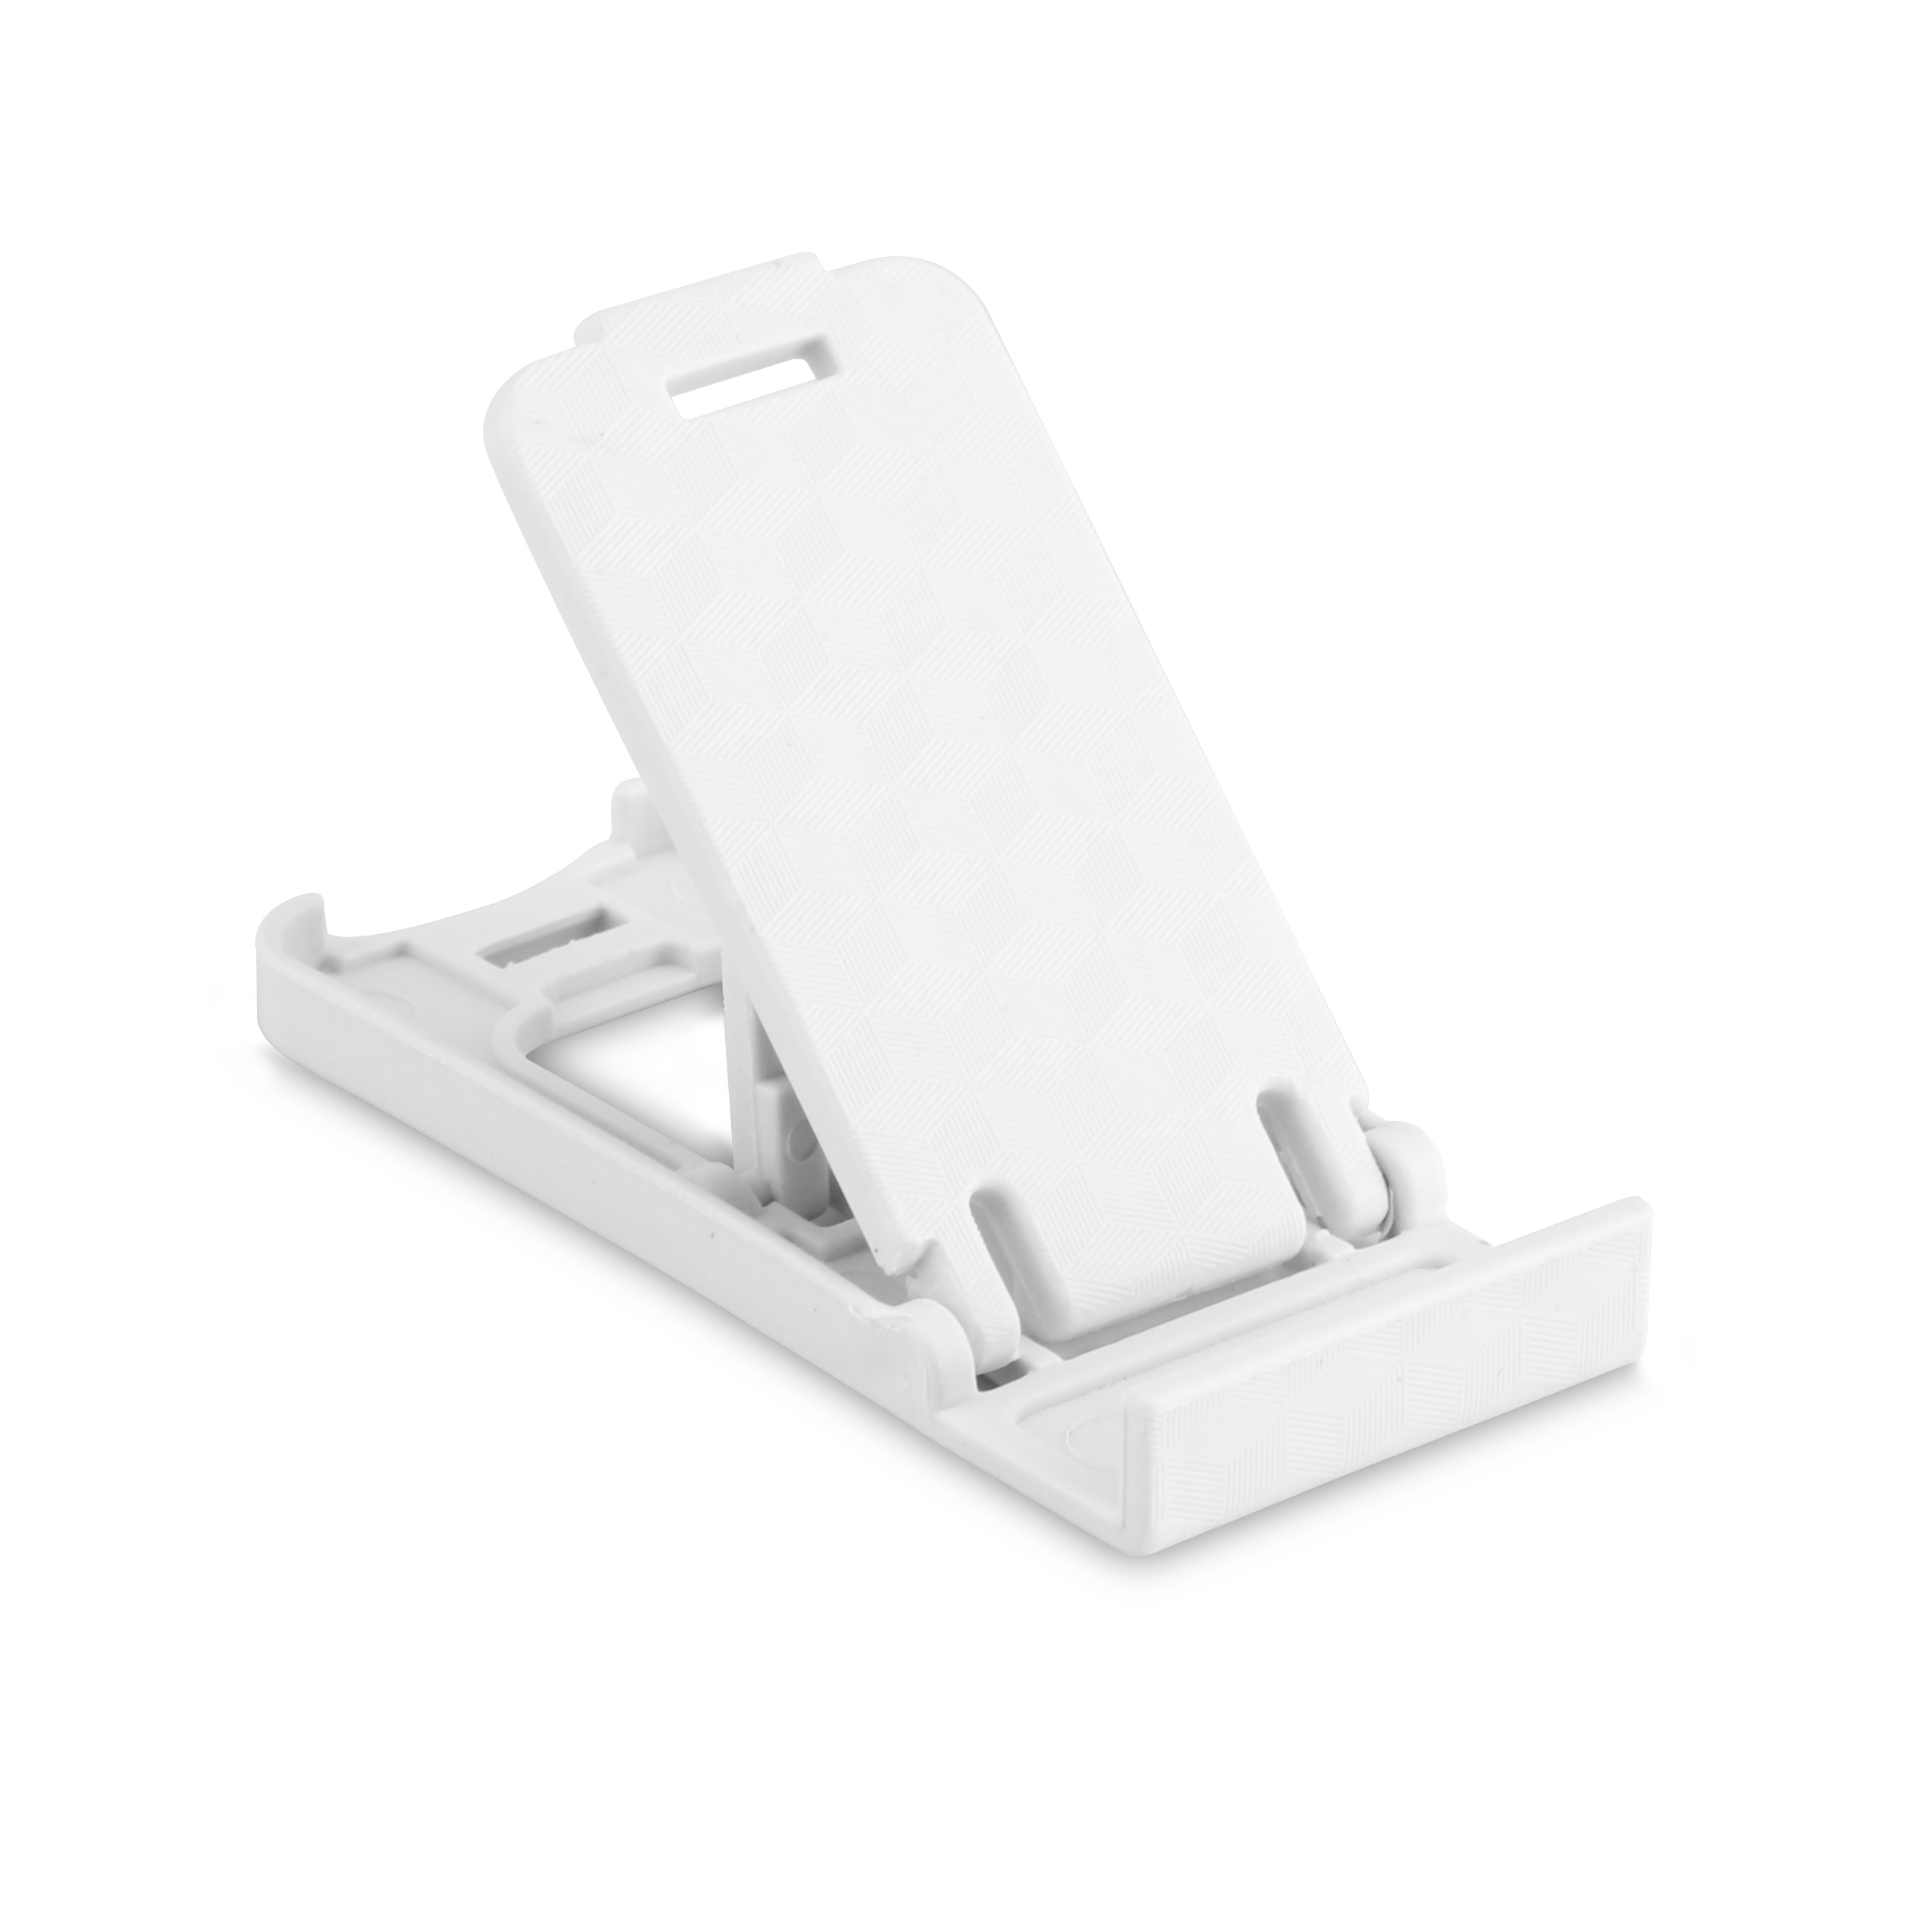 Phone Holder Cute Multi-function Adjustable Mobile Phone Holder Stand Lovely Portable Holders Stable Protective fold for iphone(China)